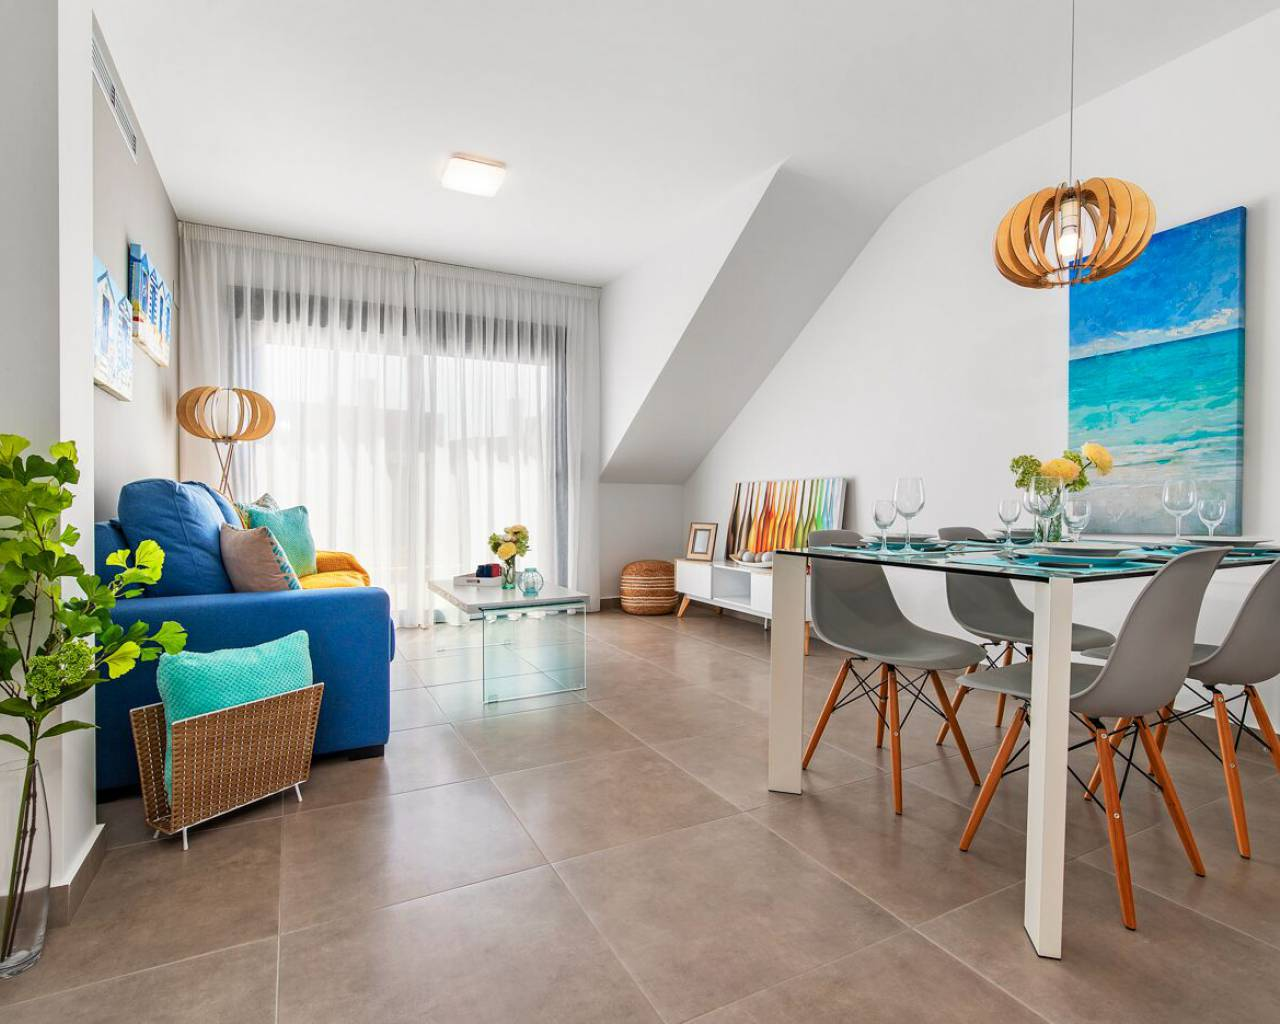 spacious living room inside new two bedroom apartments for sale pilar de la horadada